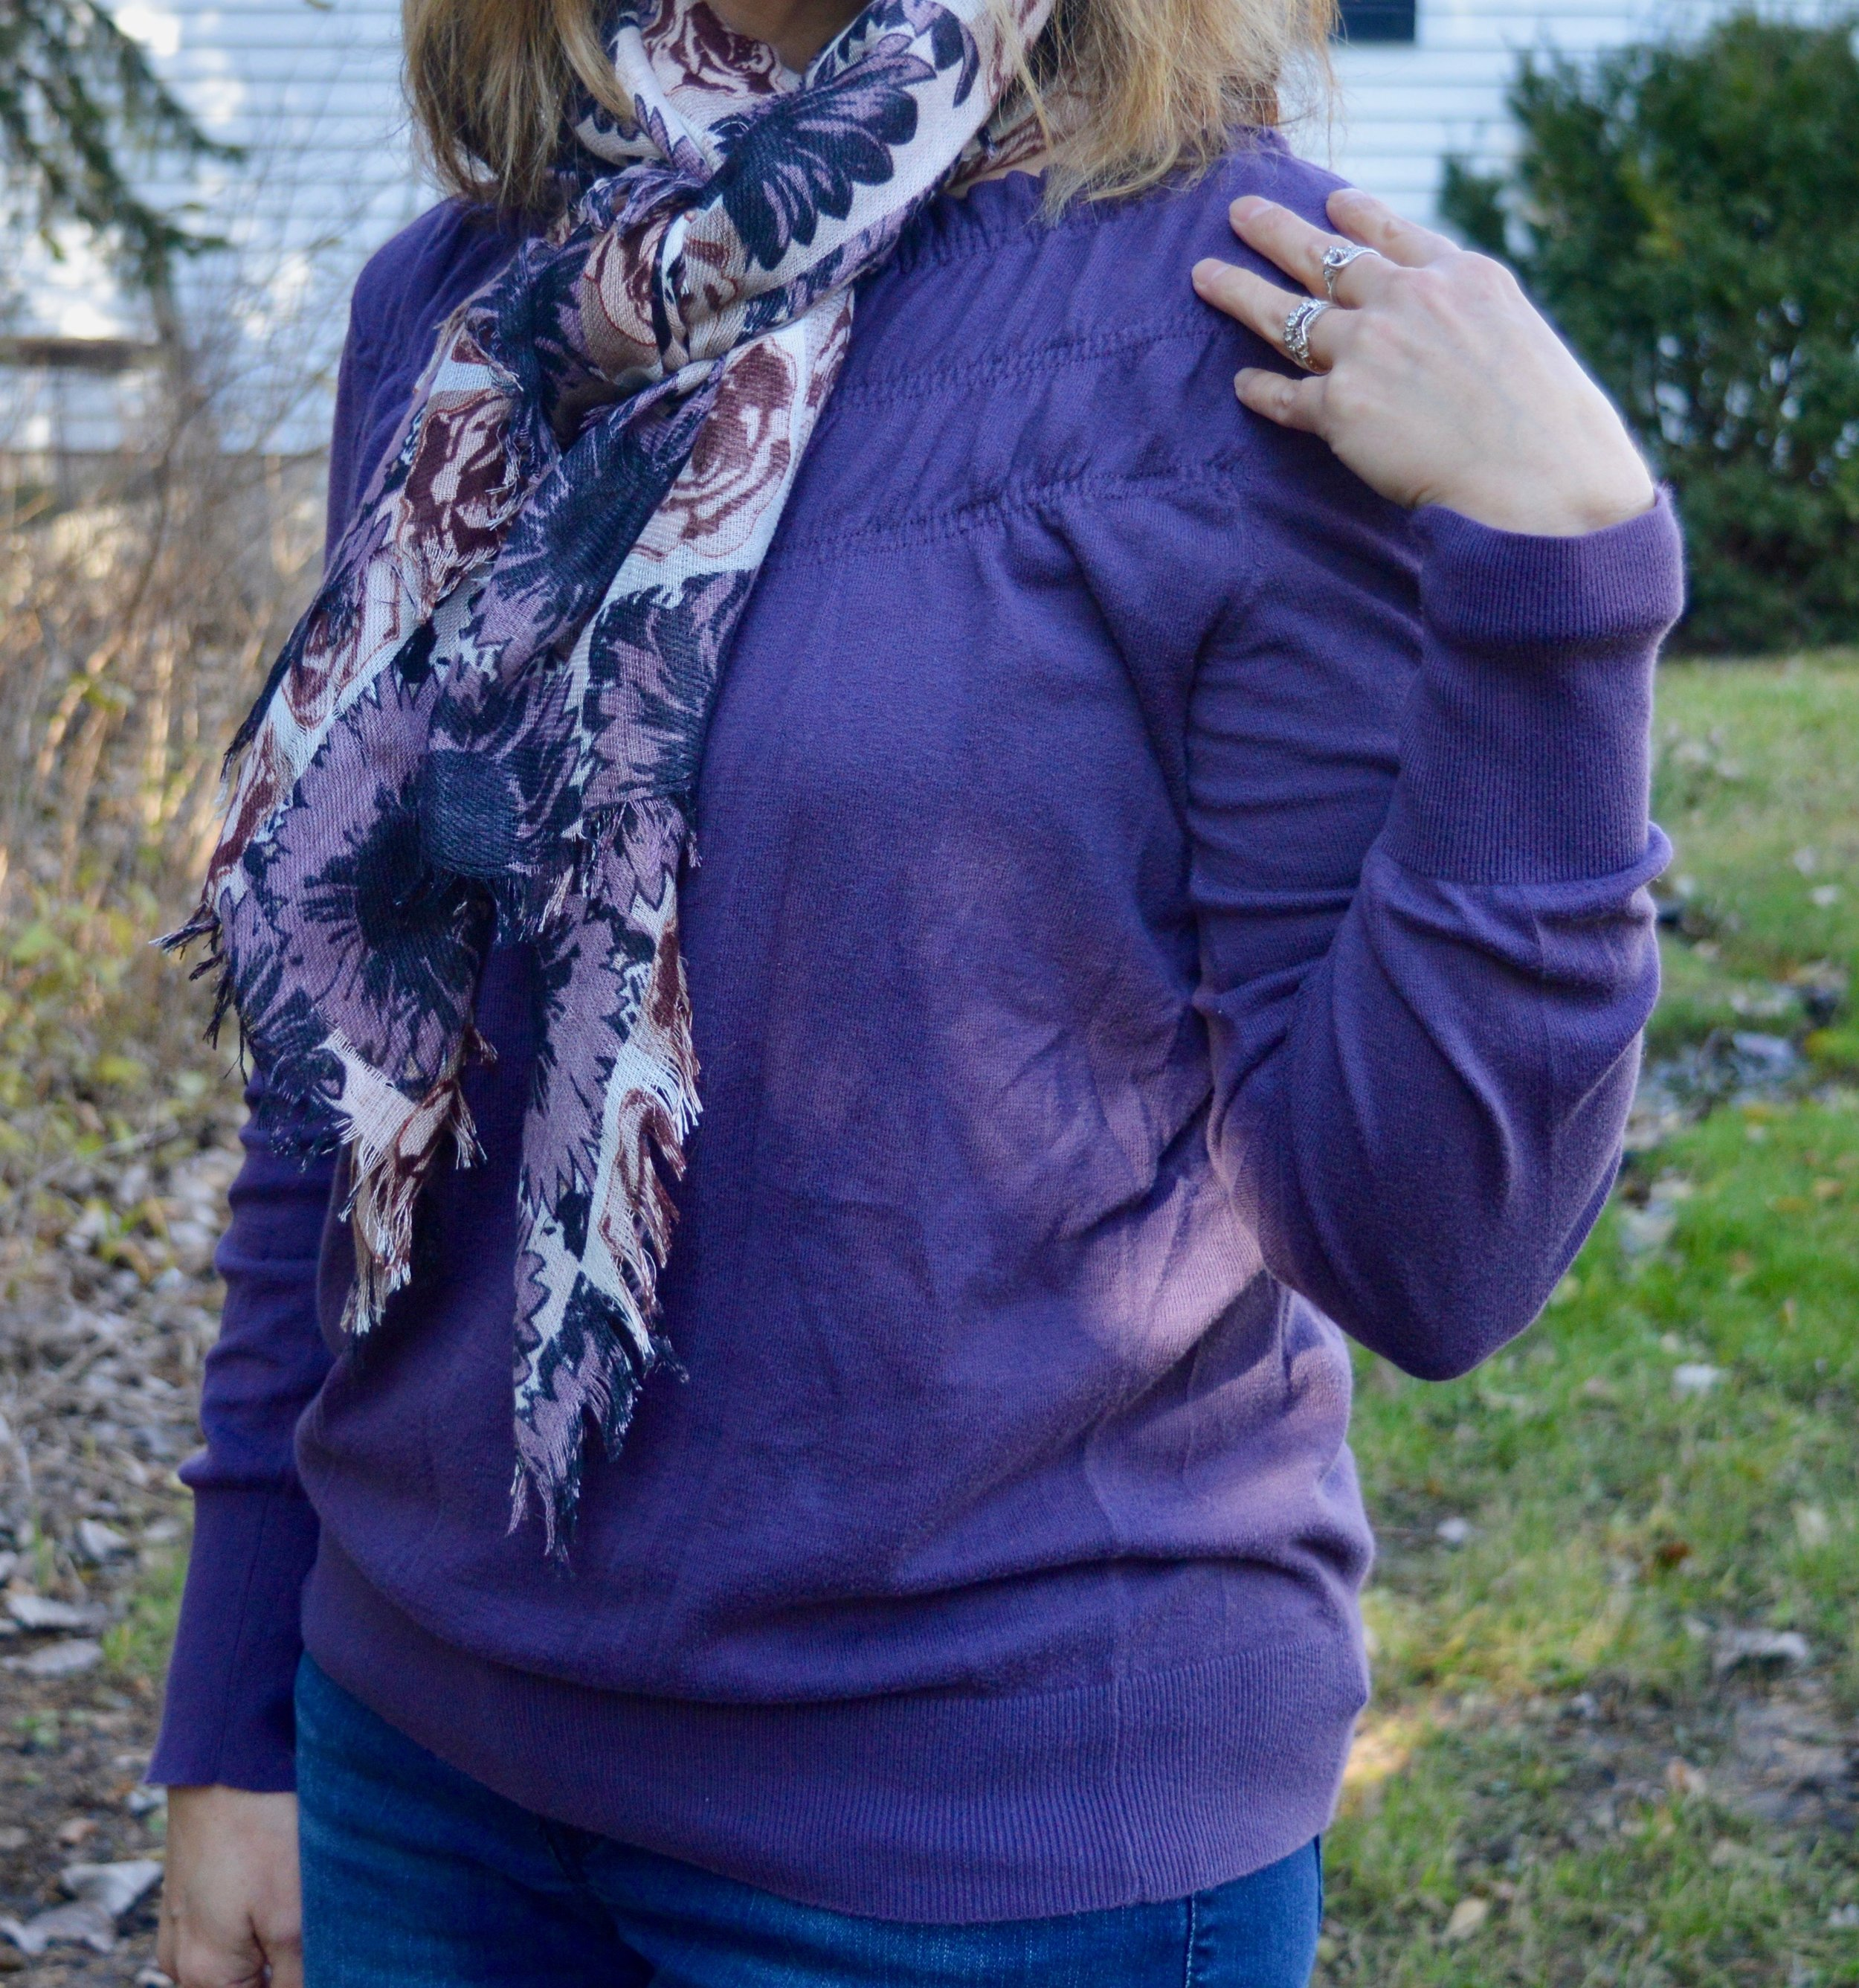 Layering love - wearing a scarf